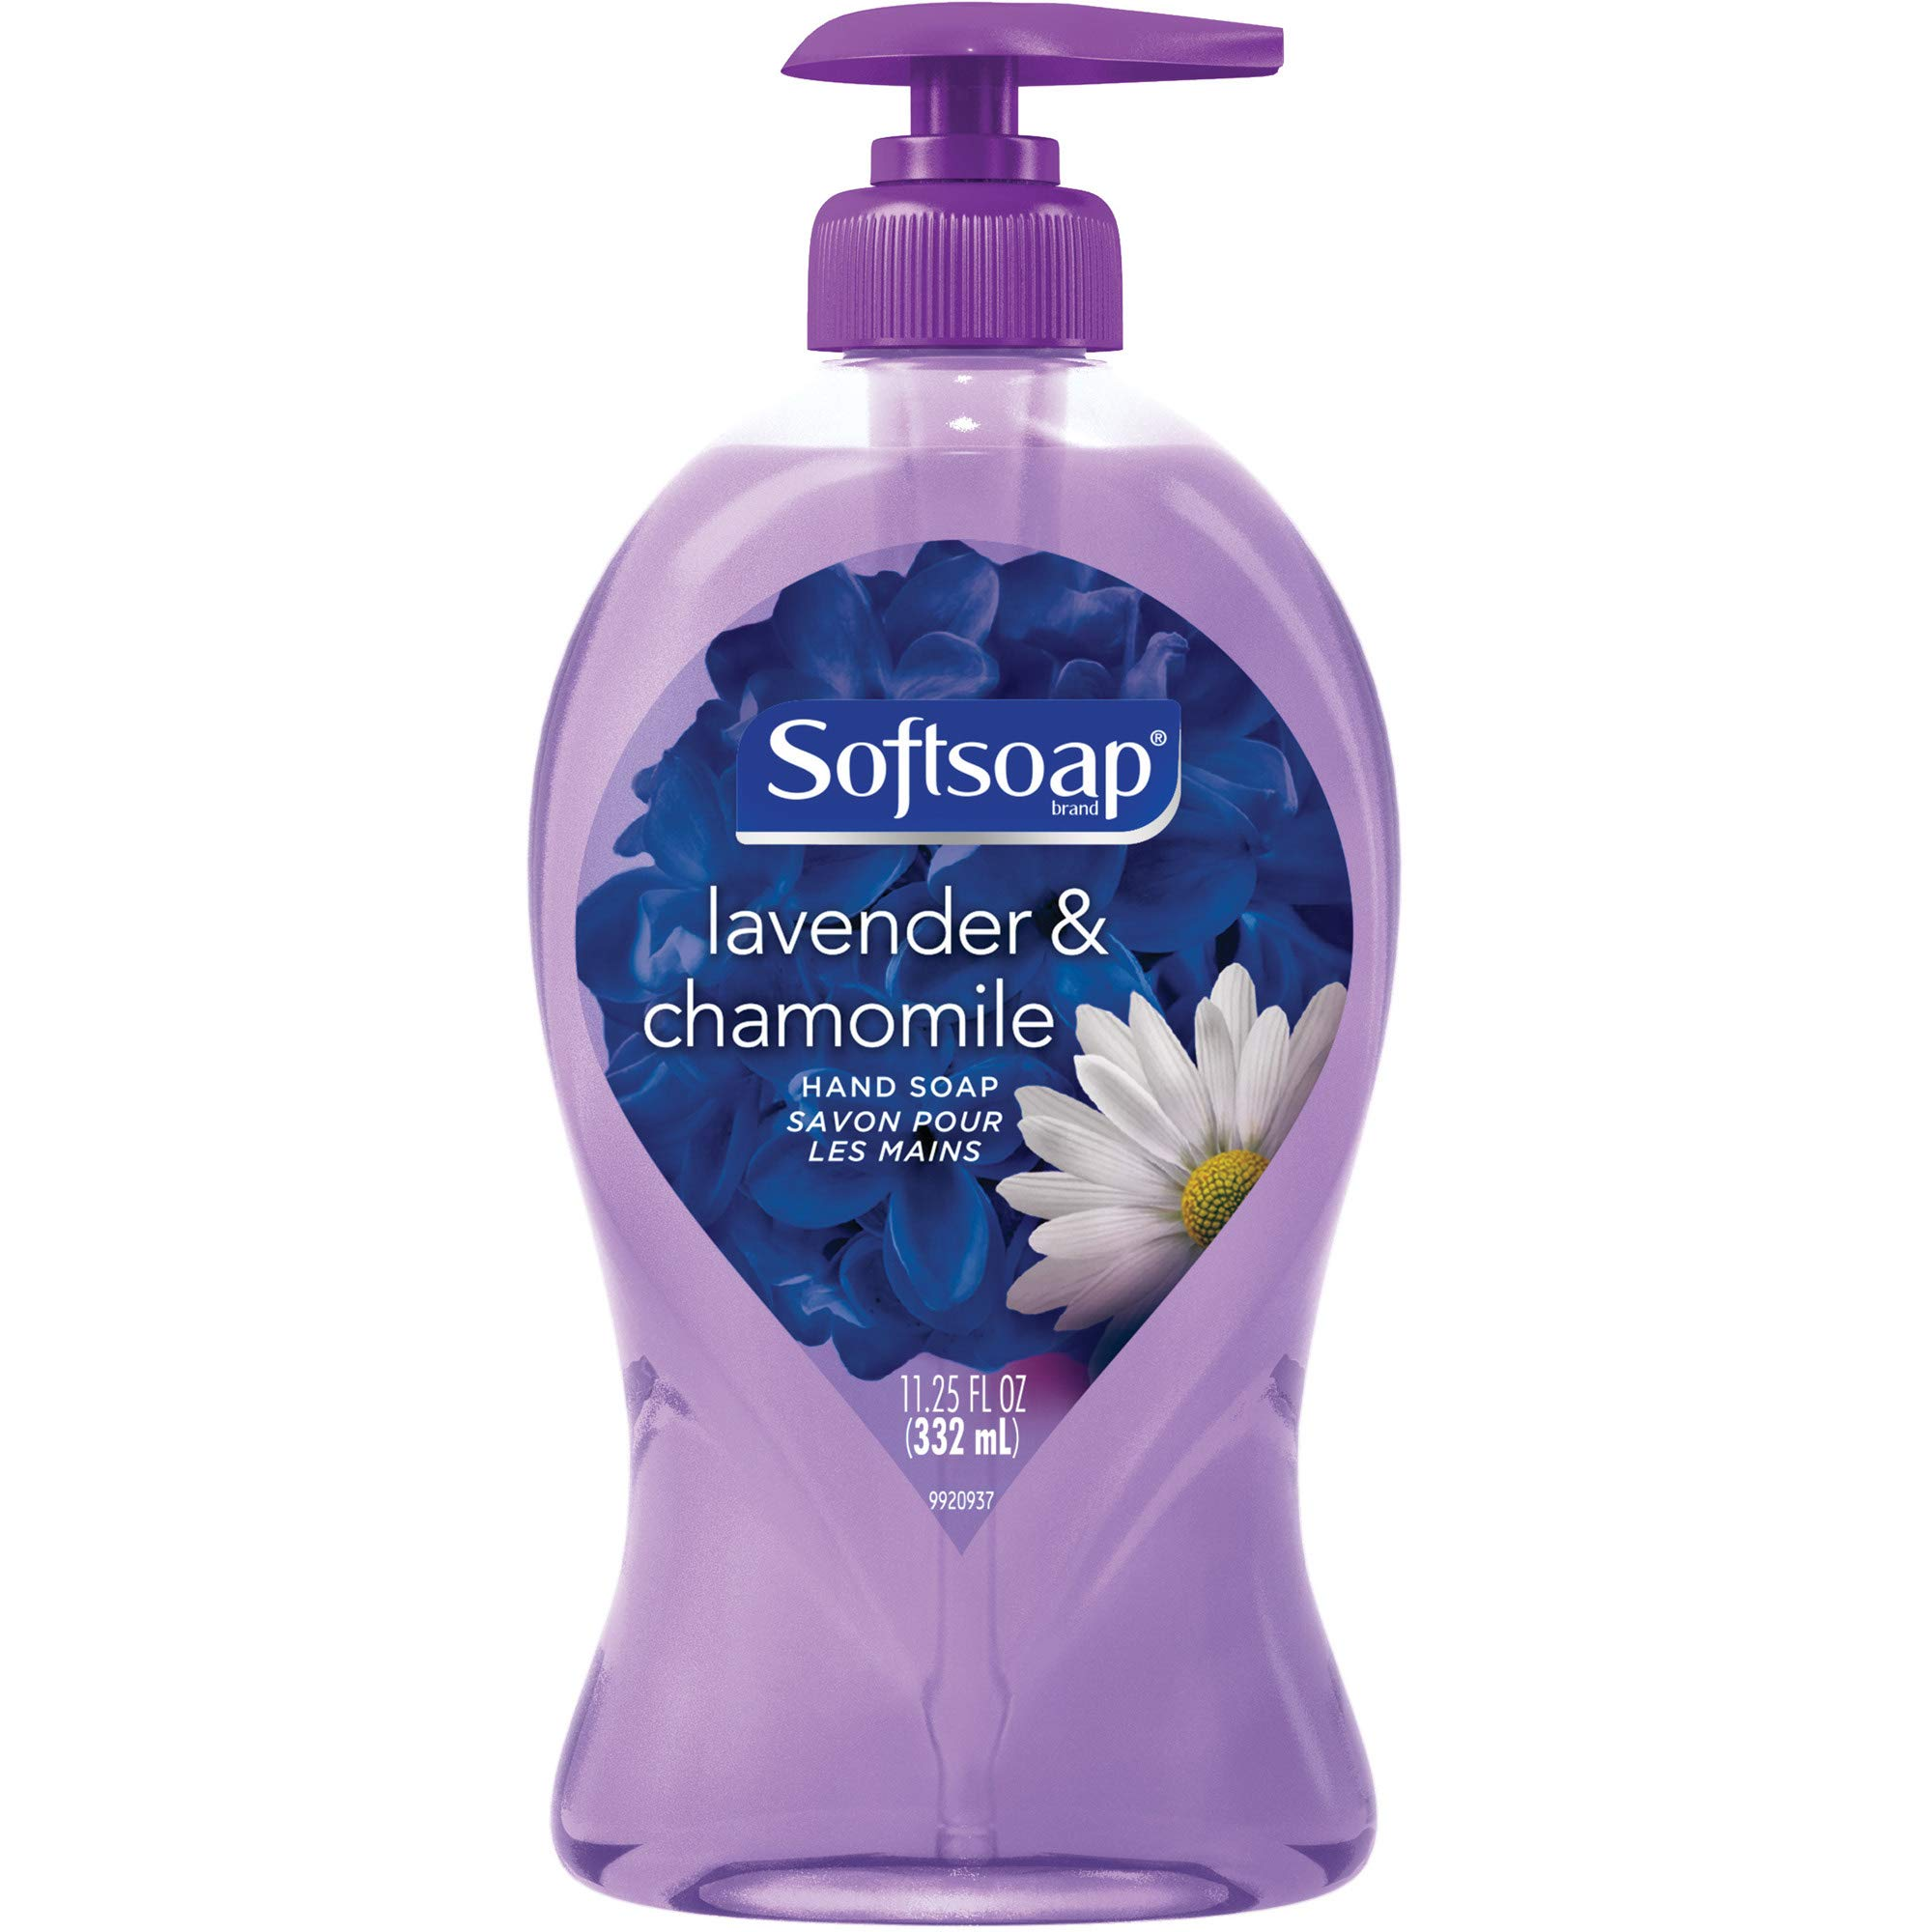 Softsoap Liquid Hand Soap, Lavender and Chamomile - 11.25 fluid ounce